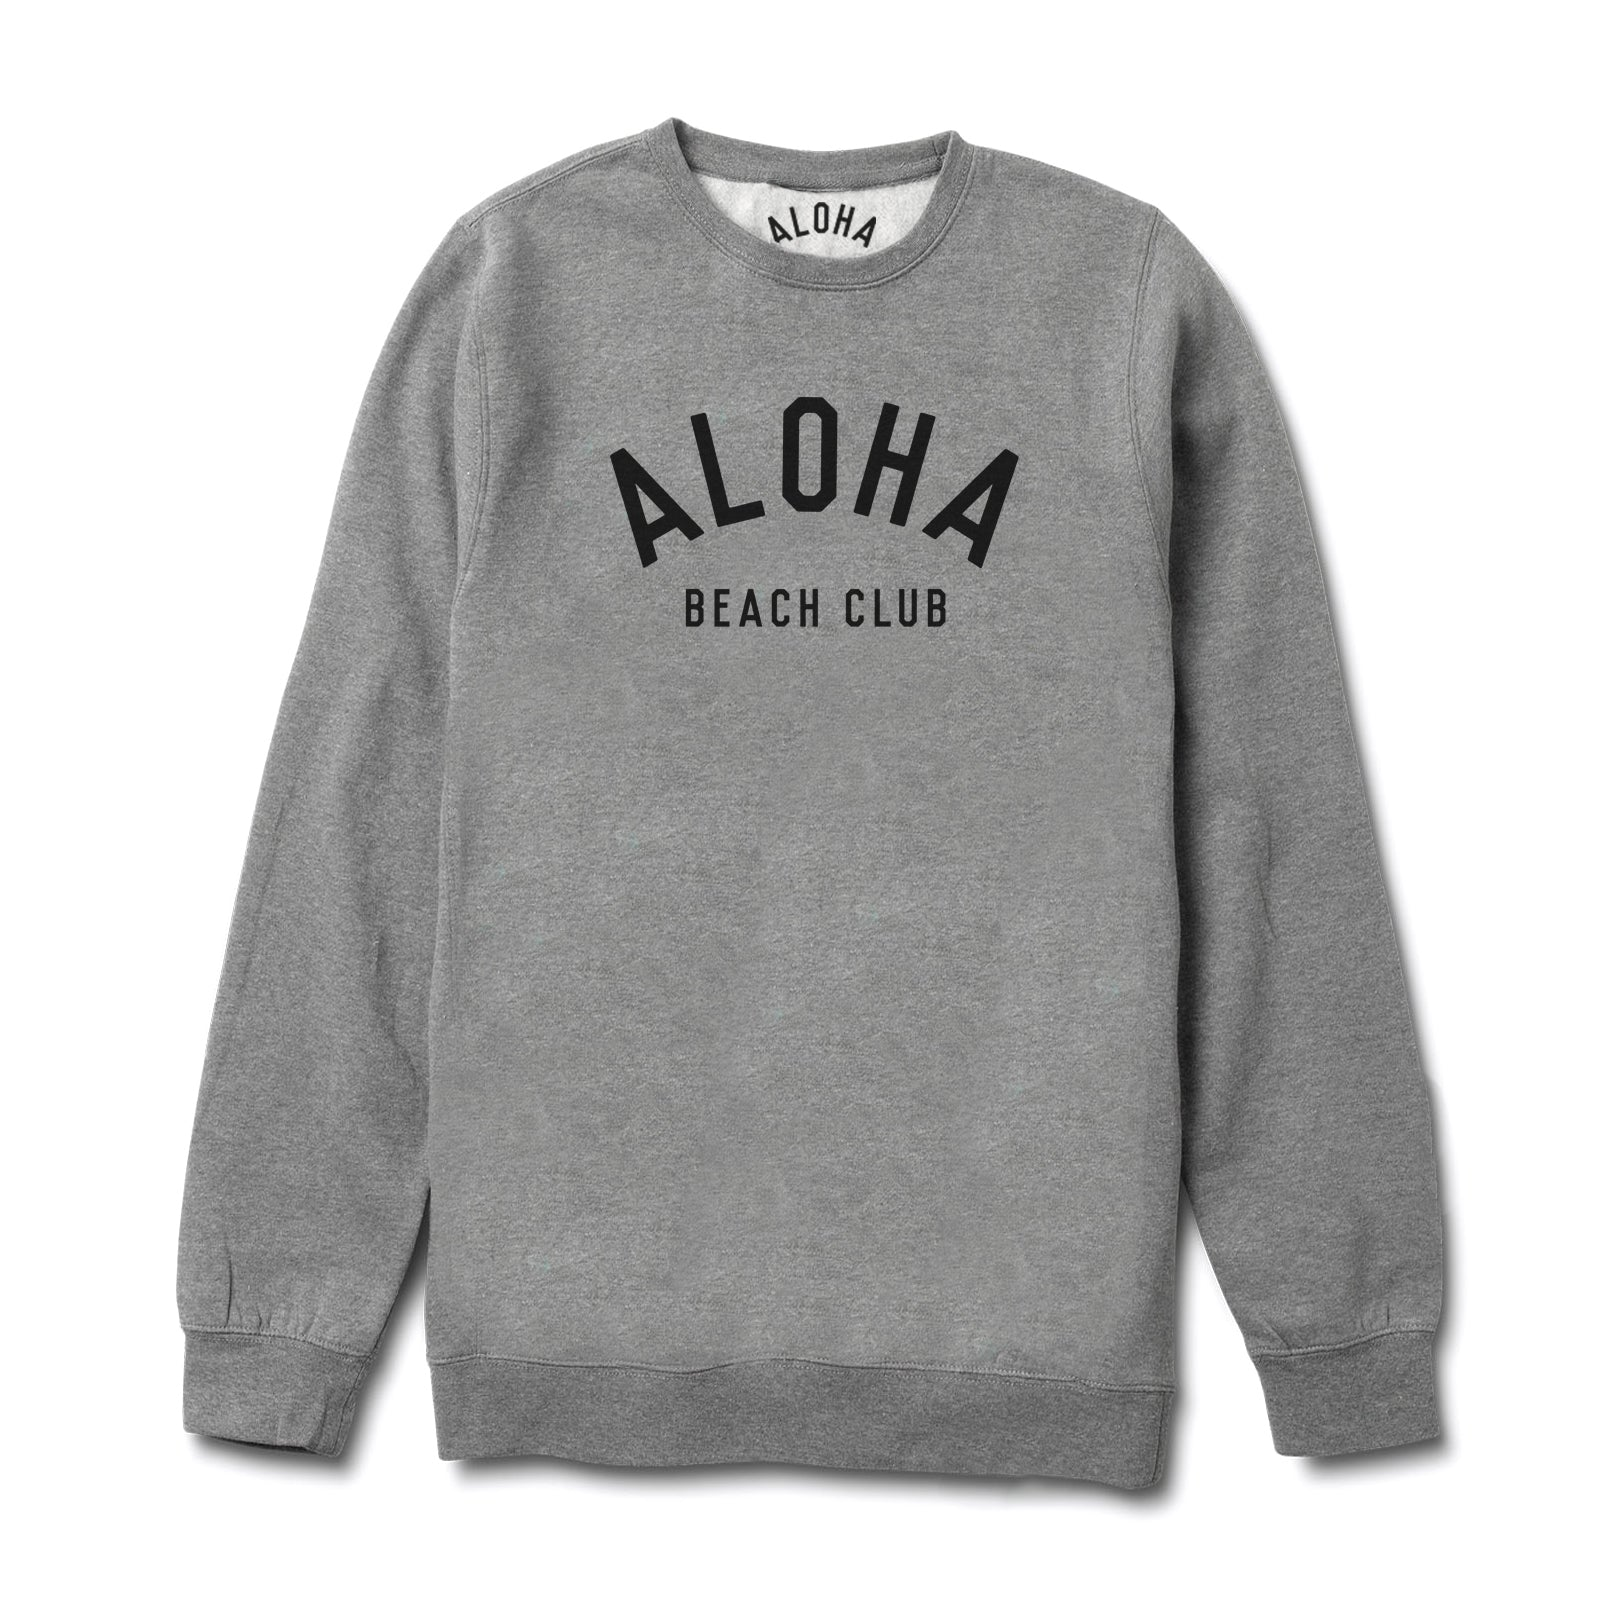 Aloha Beach Club - Crew Tri-blend Sweatshirt - Aloha Beach Club